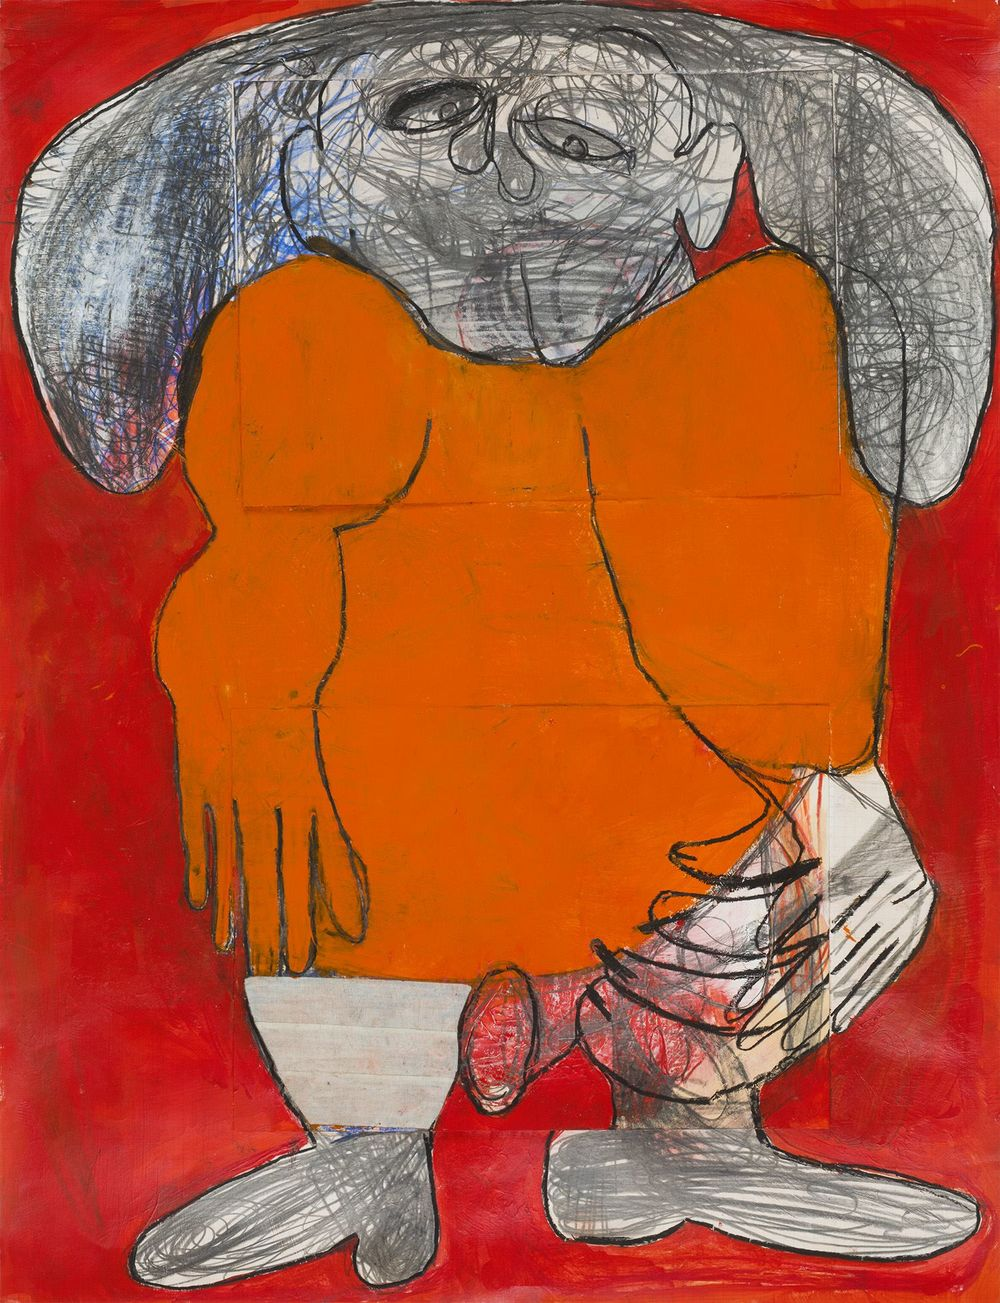 Caroline Demangel    Untitled  , 2014 Mixed media on paper 25 x 19 inches 63.5 x 48.3 cm CDm 10